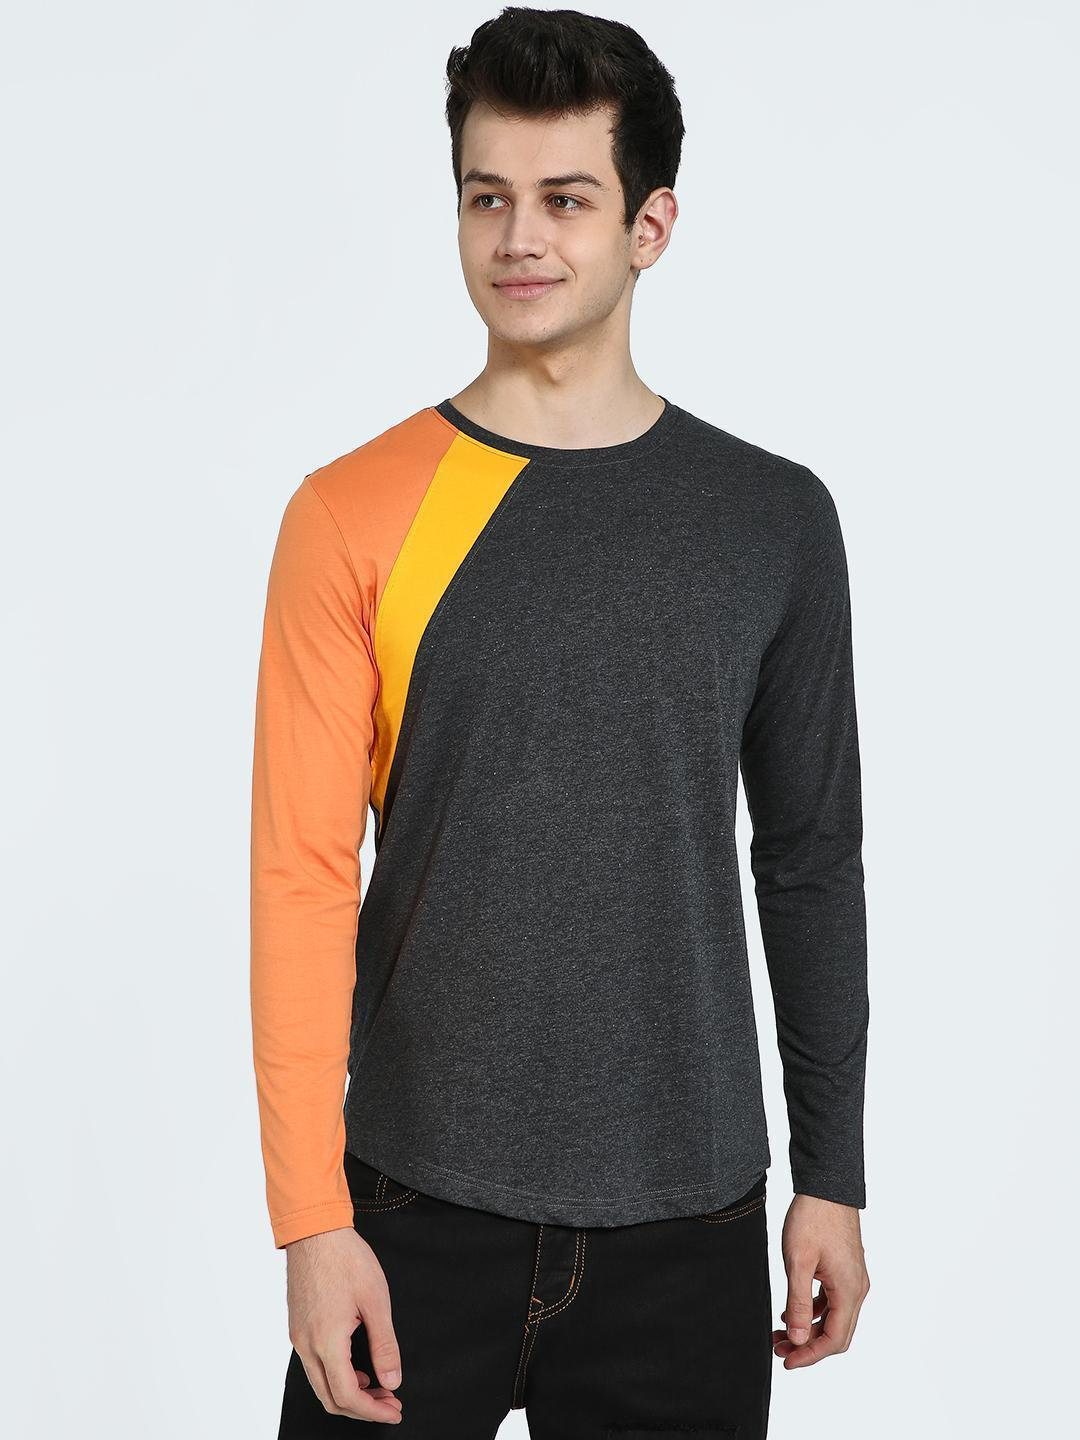 IMPACKT Multi Colour Block Long Sleeve T-Shirt 1